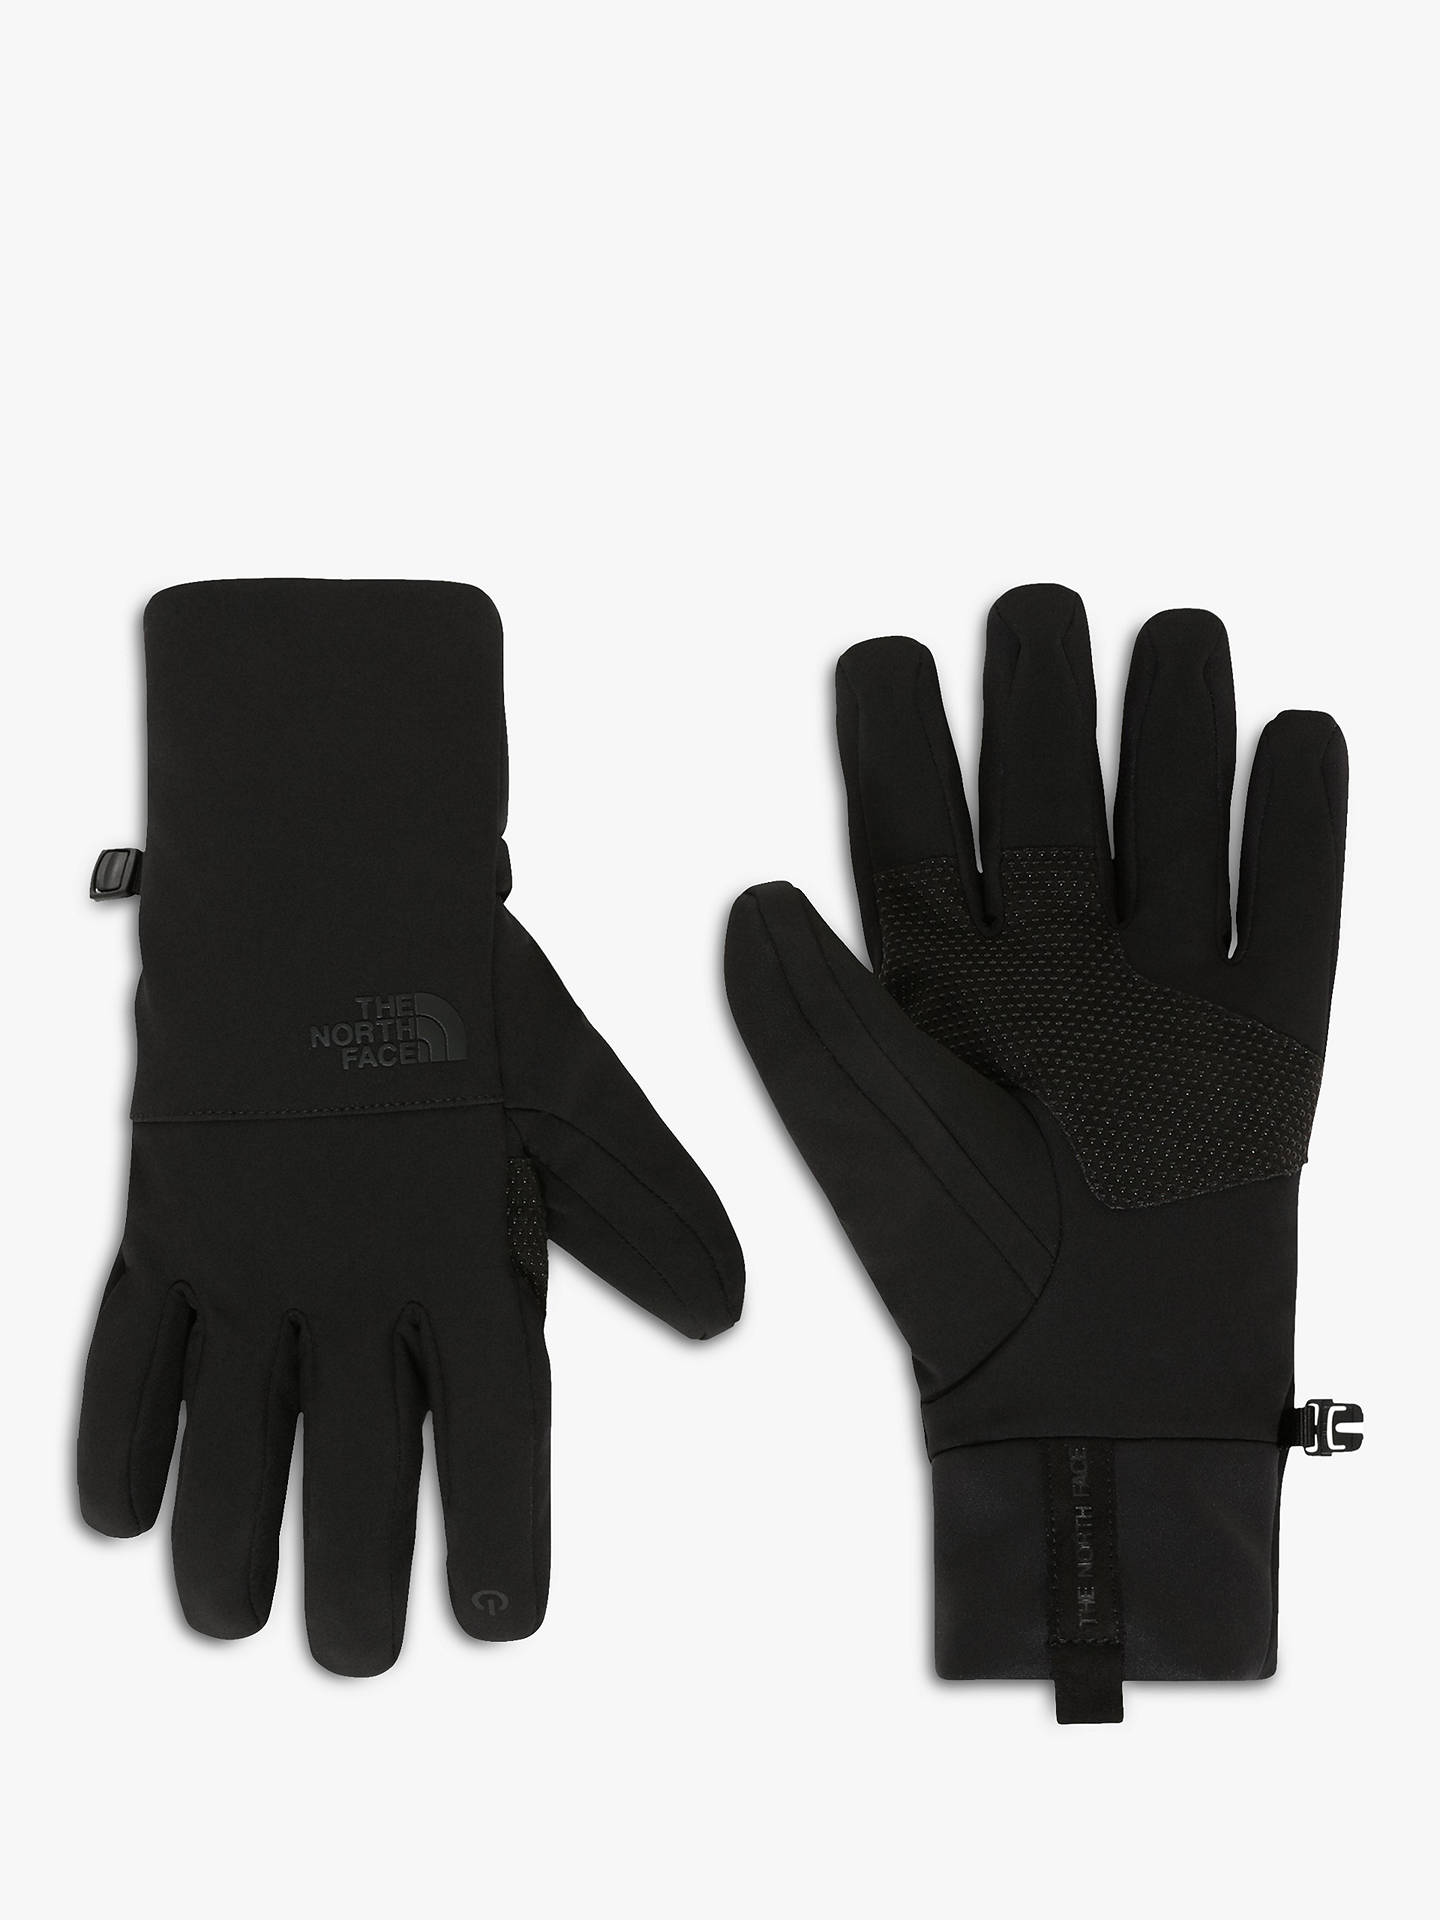 Buy The North Face Apex Etip Men's Gloves, Black, S Online at johnlewis.com